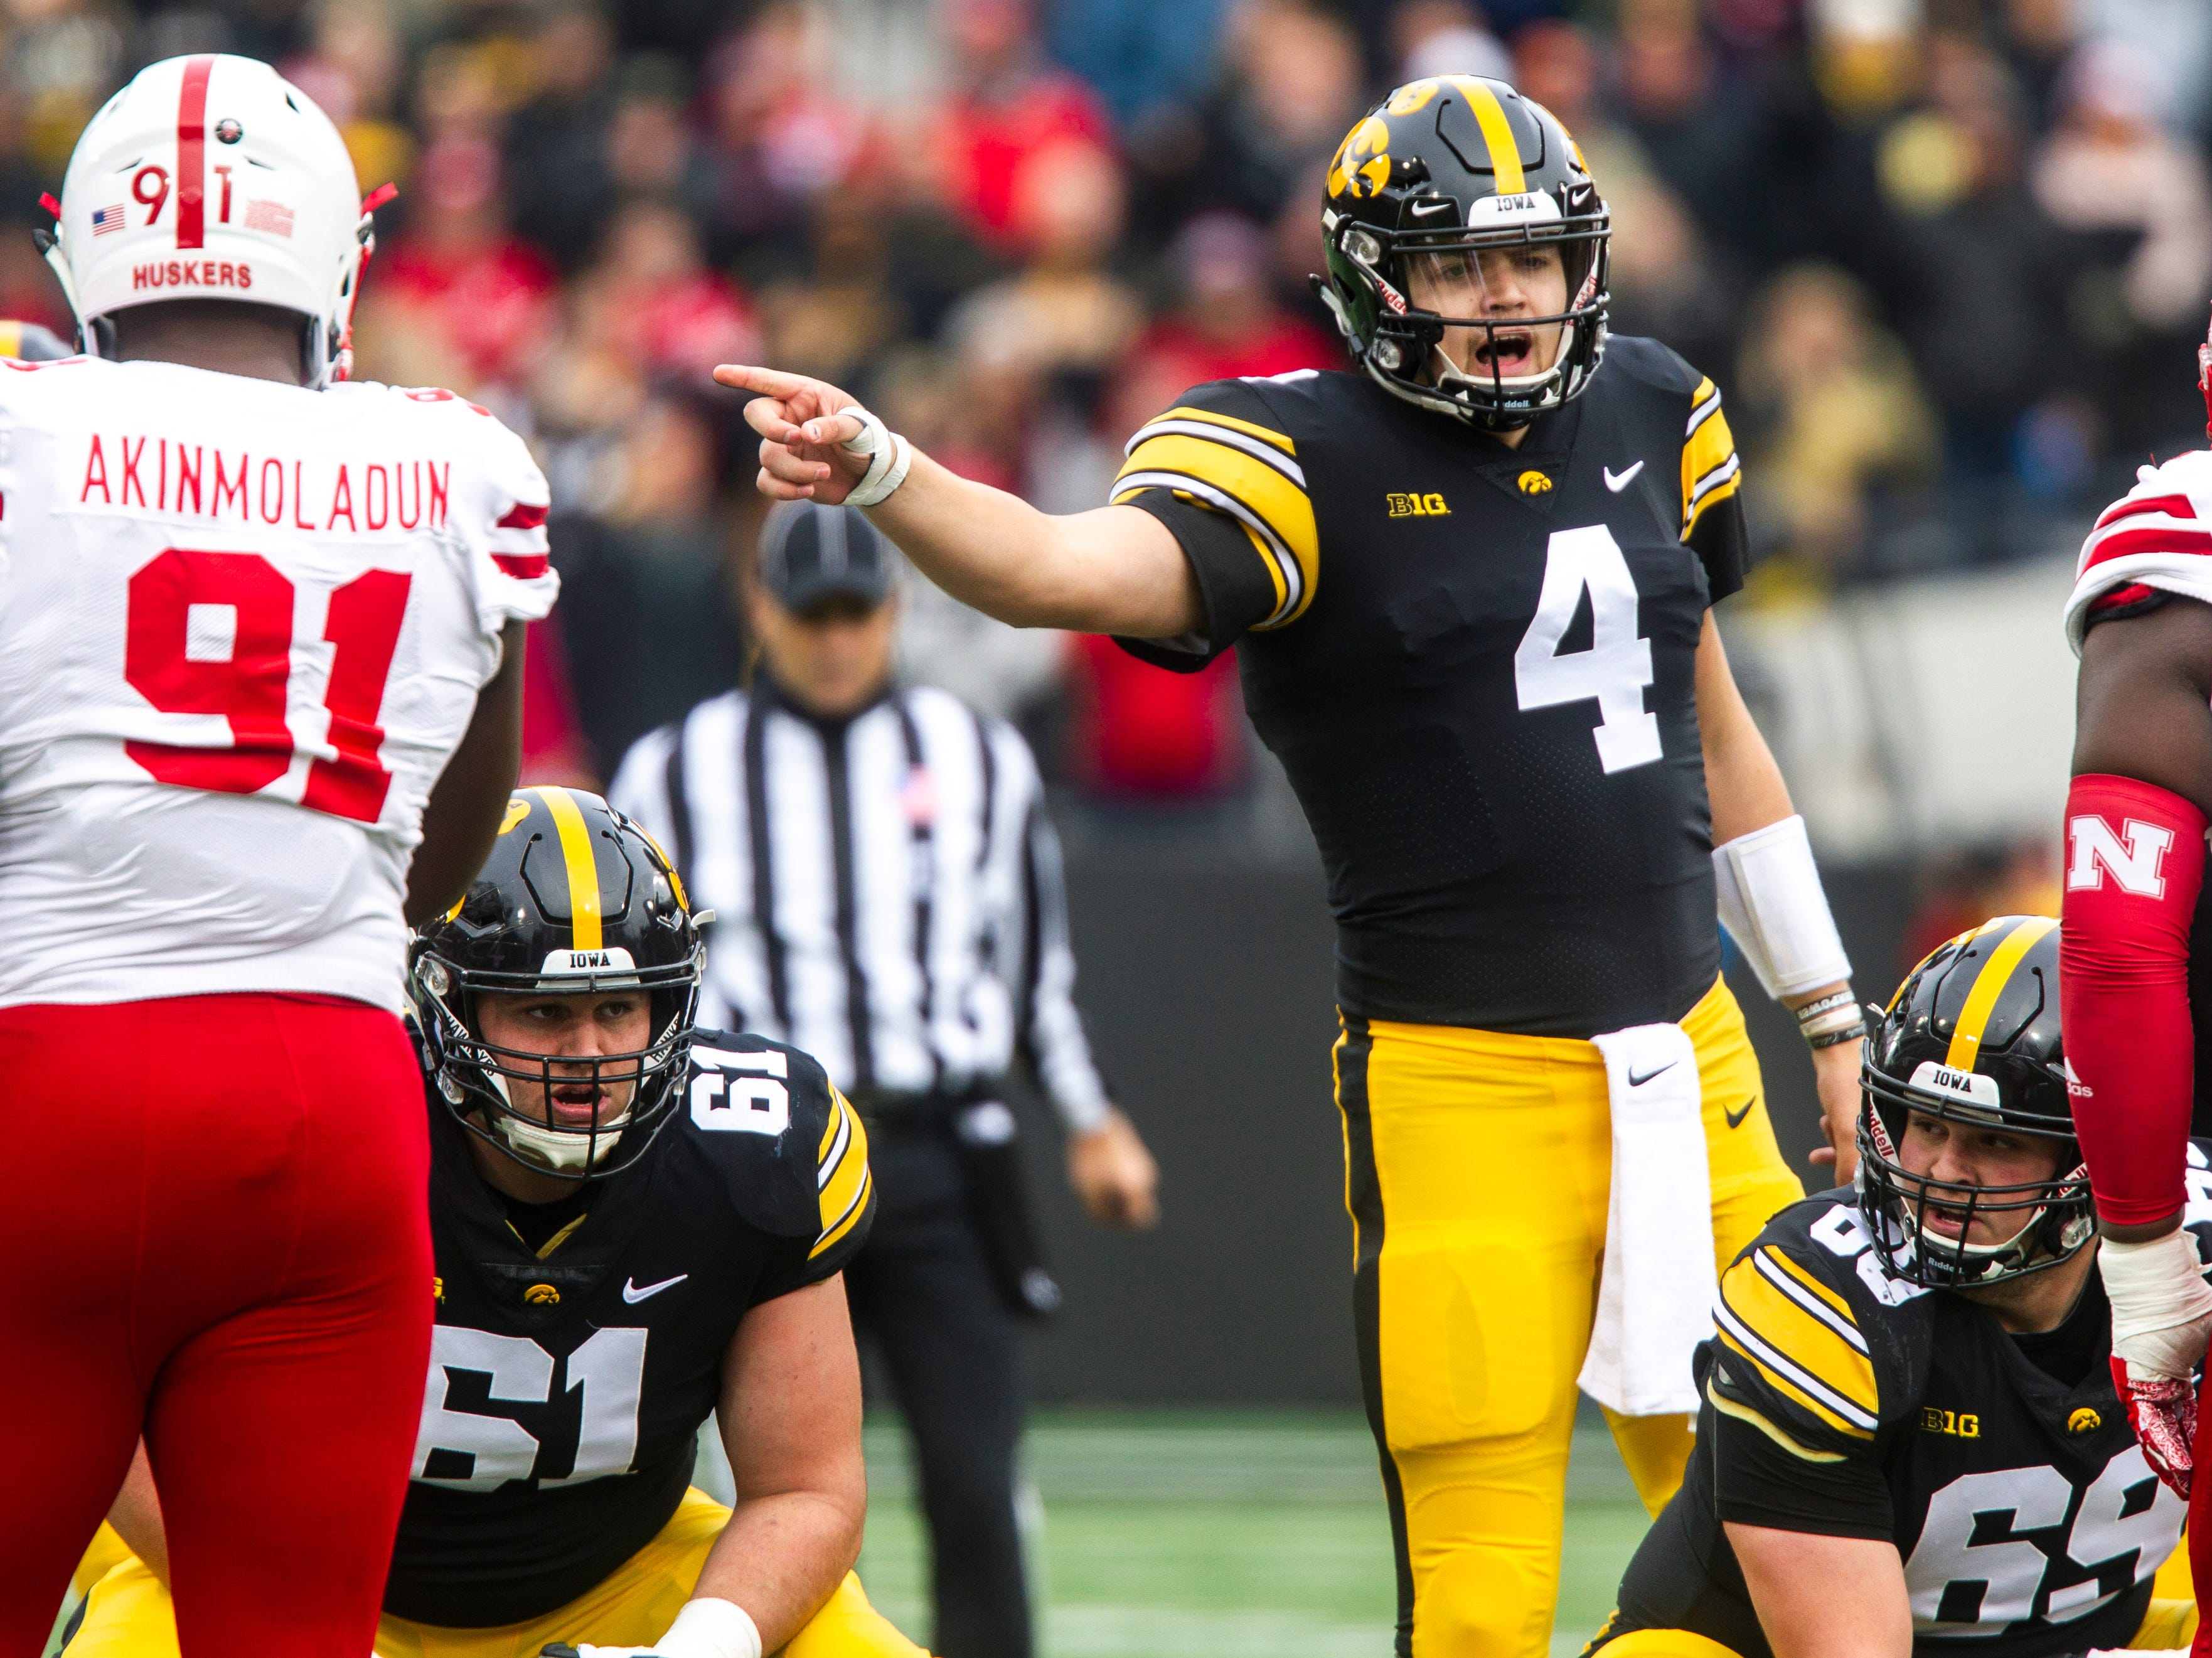 Iowa quarterback Nate Stanley (4) gestures at the line during a Big Ten Conference NCAA football game on Friday, Nov. 23, 2018, at Kinnick Stadium in Iowa City.